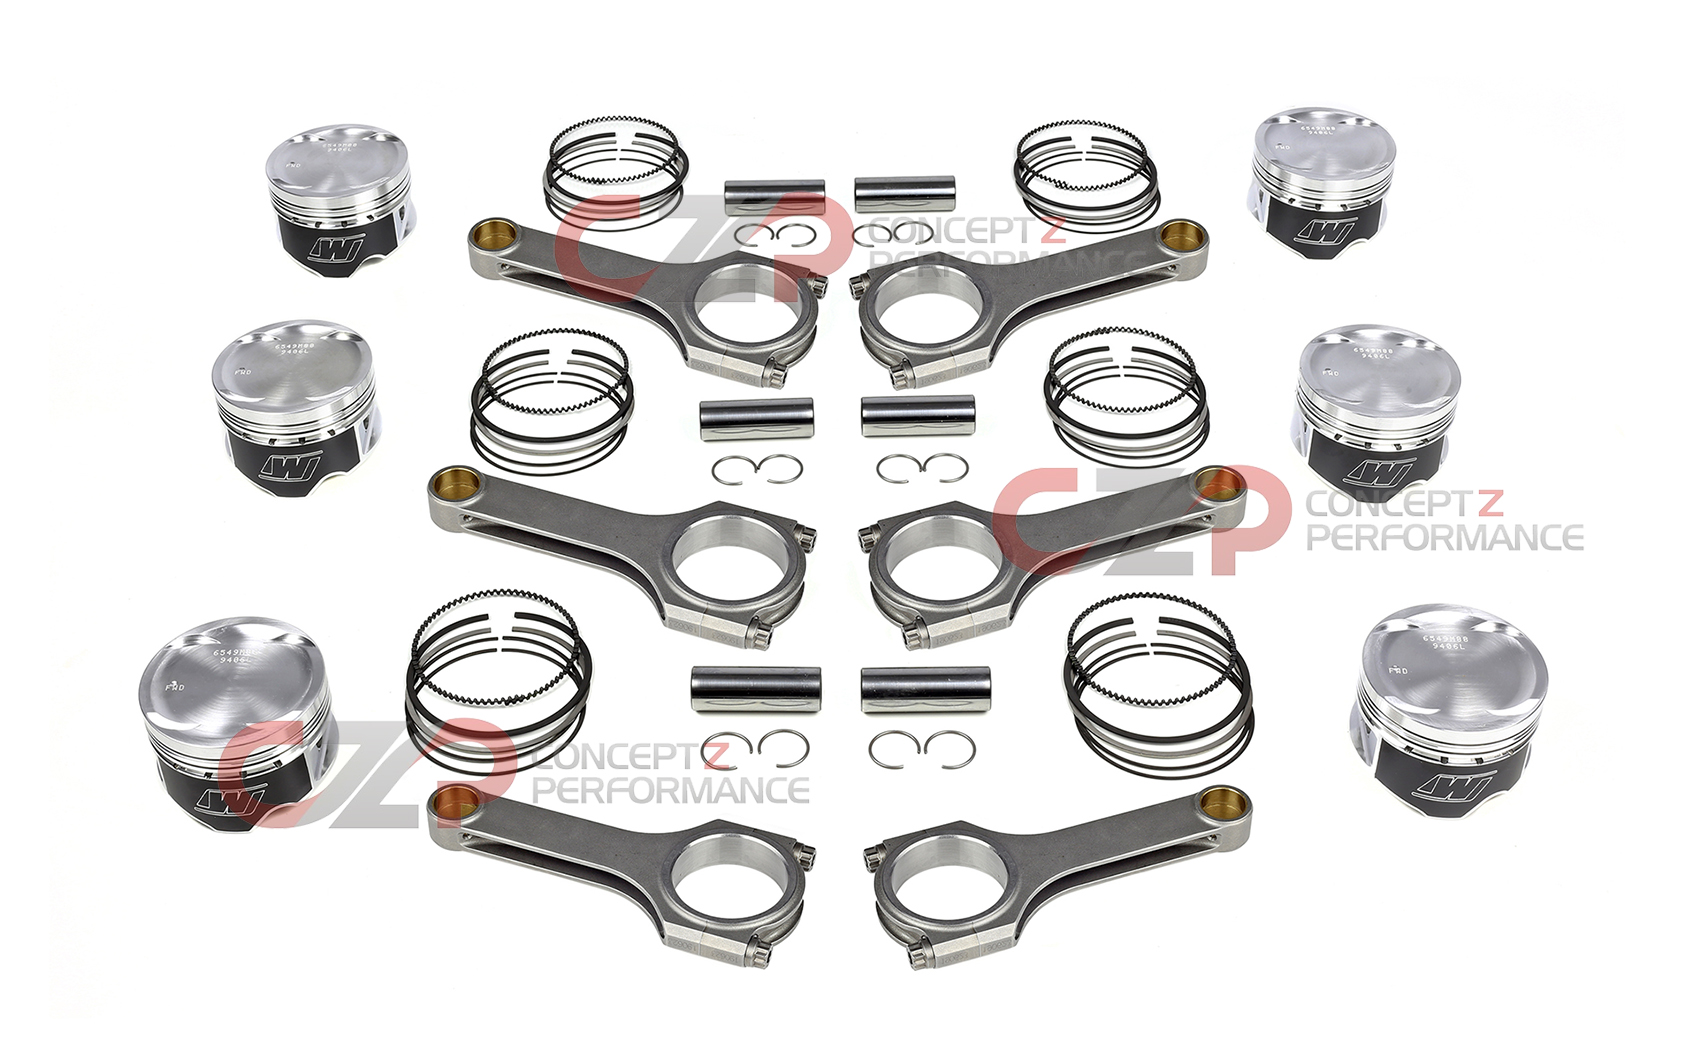 Wiseco Pistons Brian Crower Sportman Connecting Rods